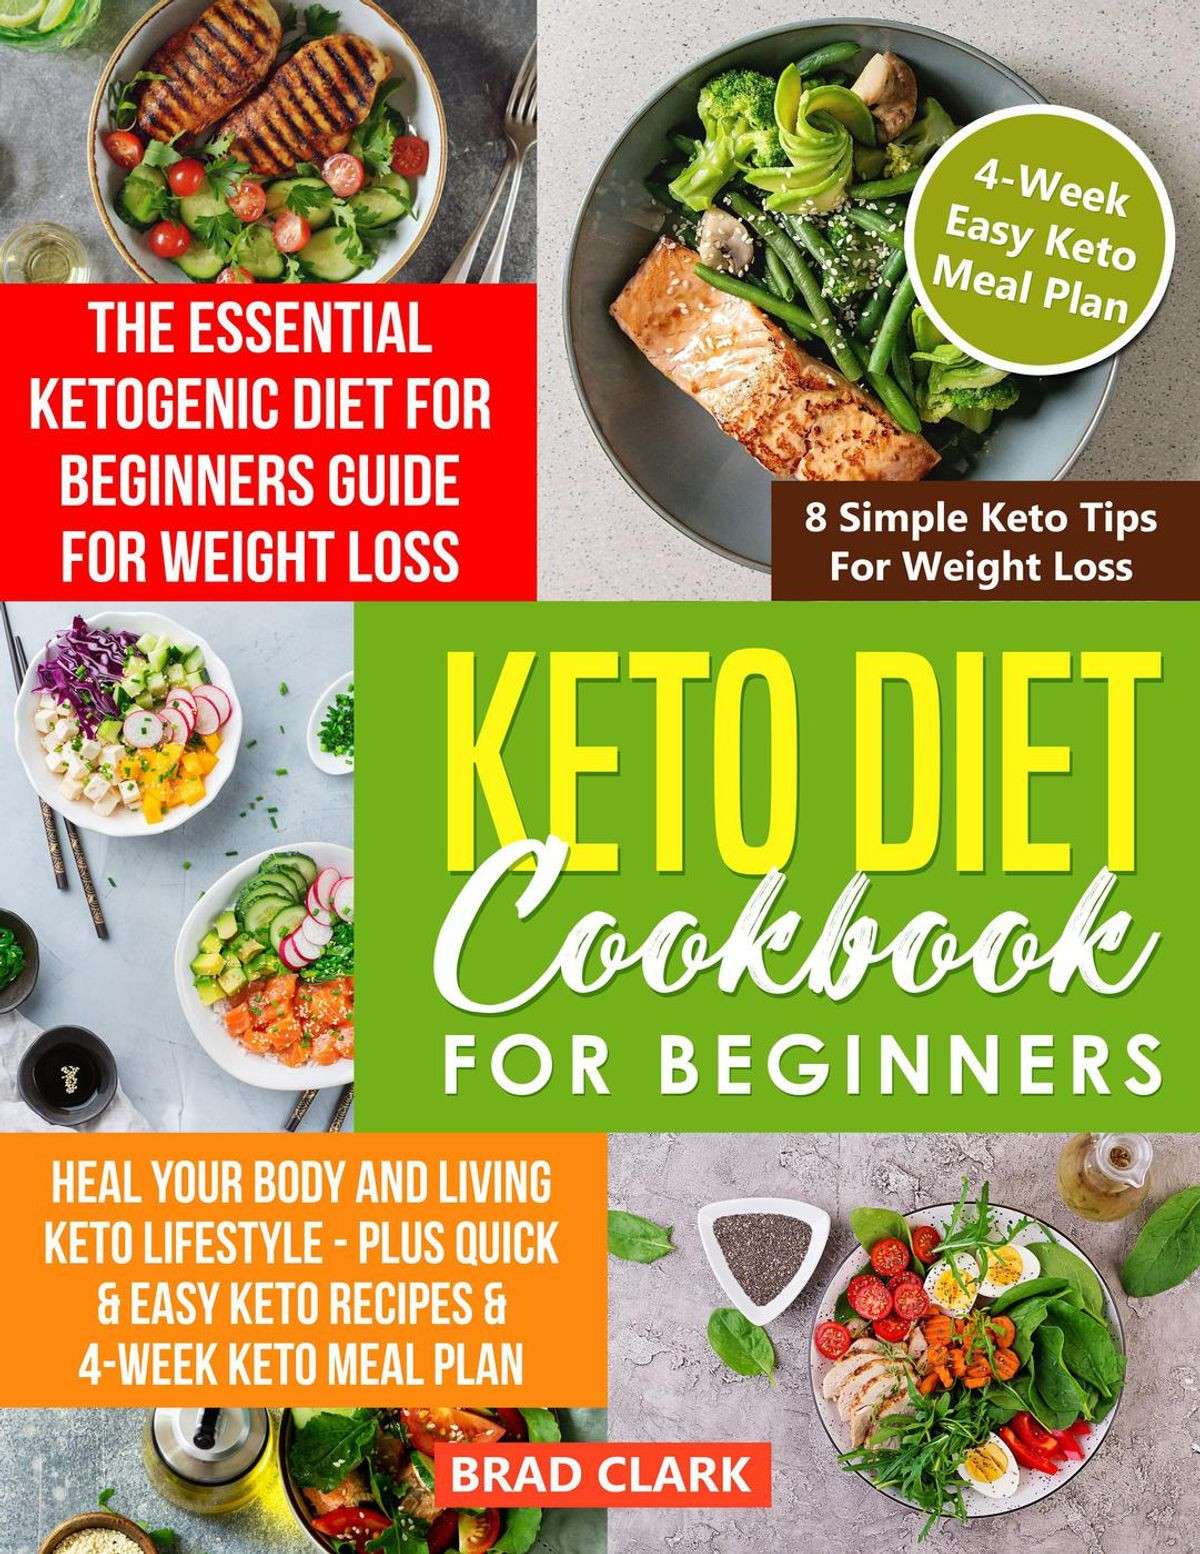 Keto Diet For Beginners Losing Weight  Keto Diet Cookbook for Beginners The Essential Ketogenic